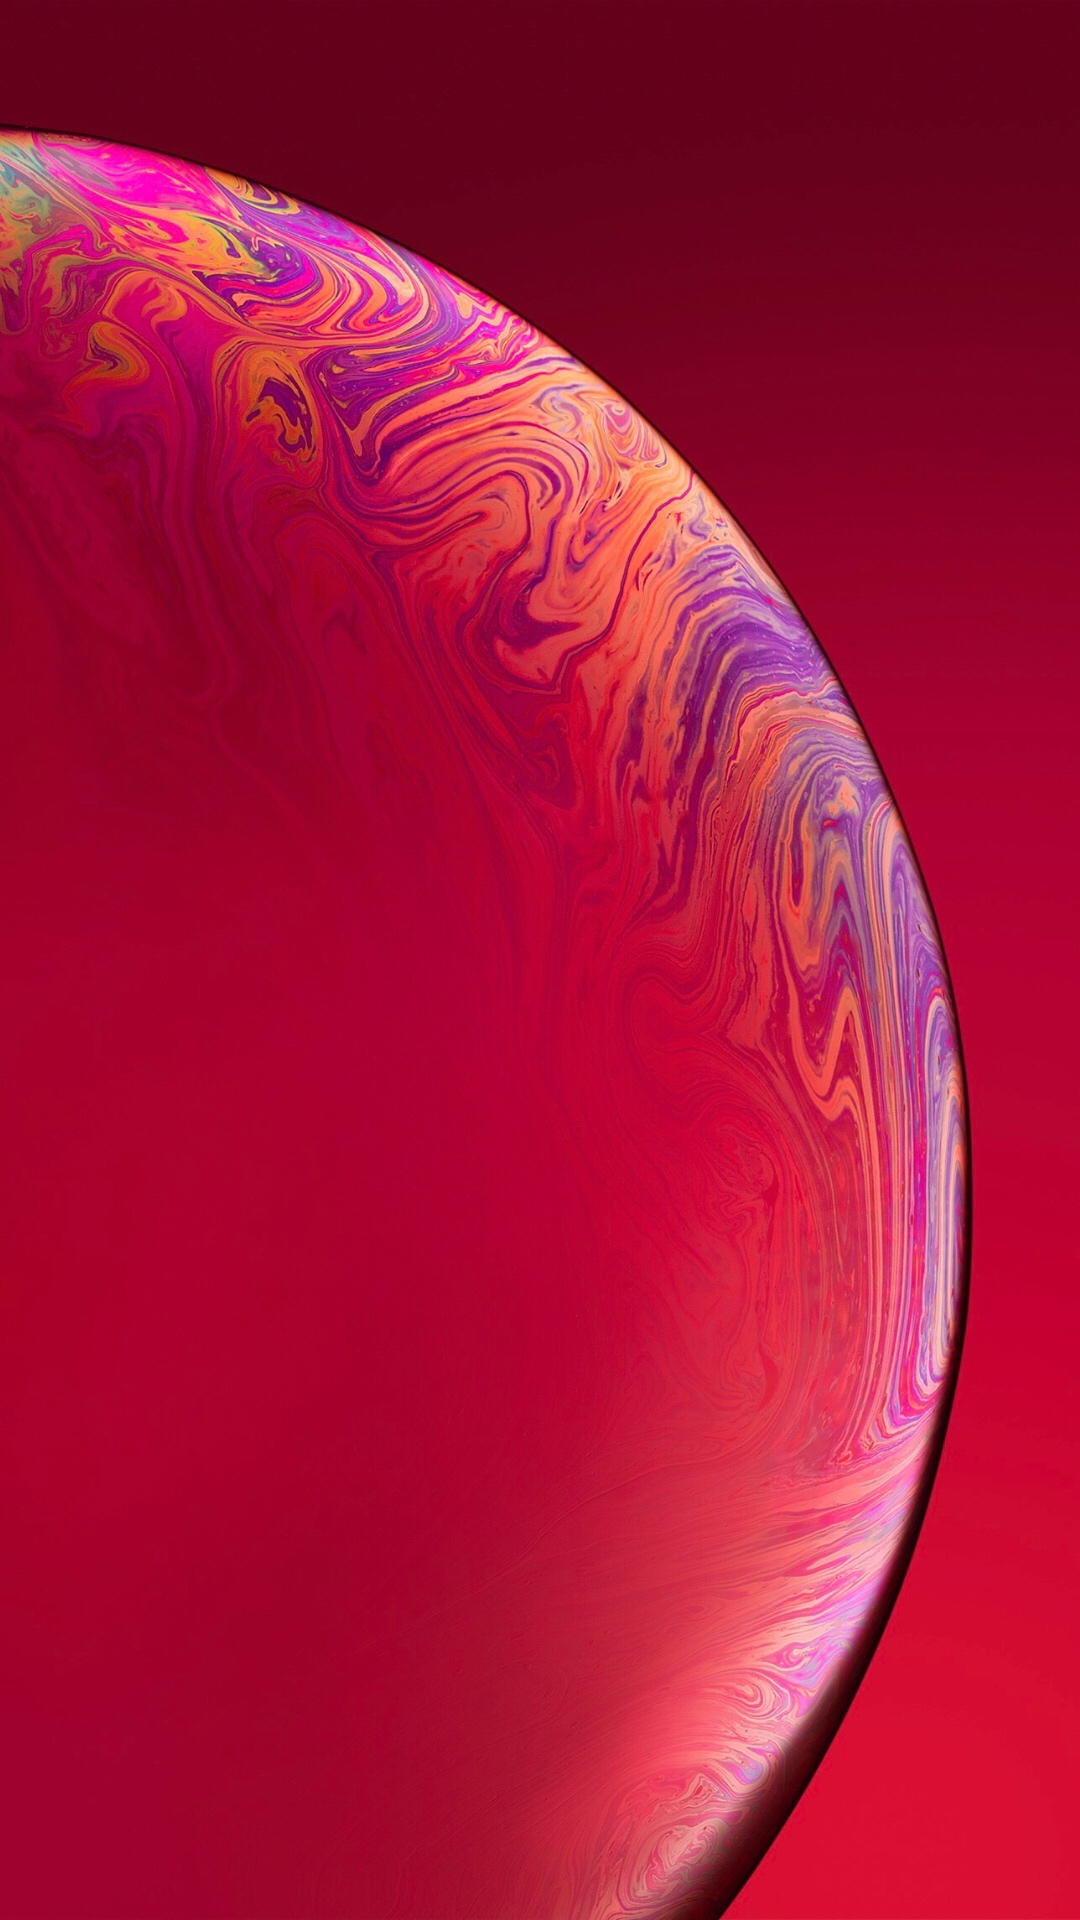 iPhone XR advertising wallpaper any iPhone 12